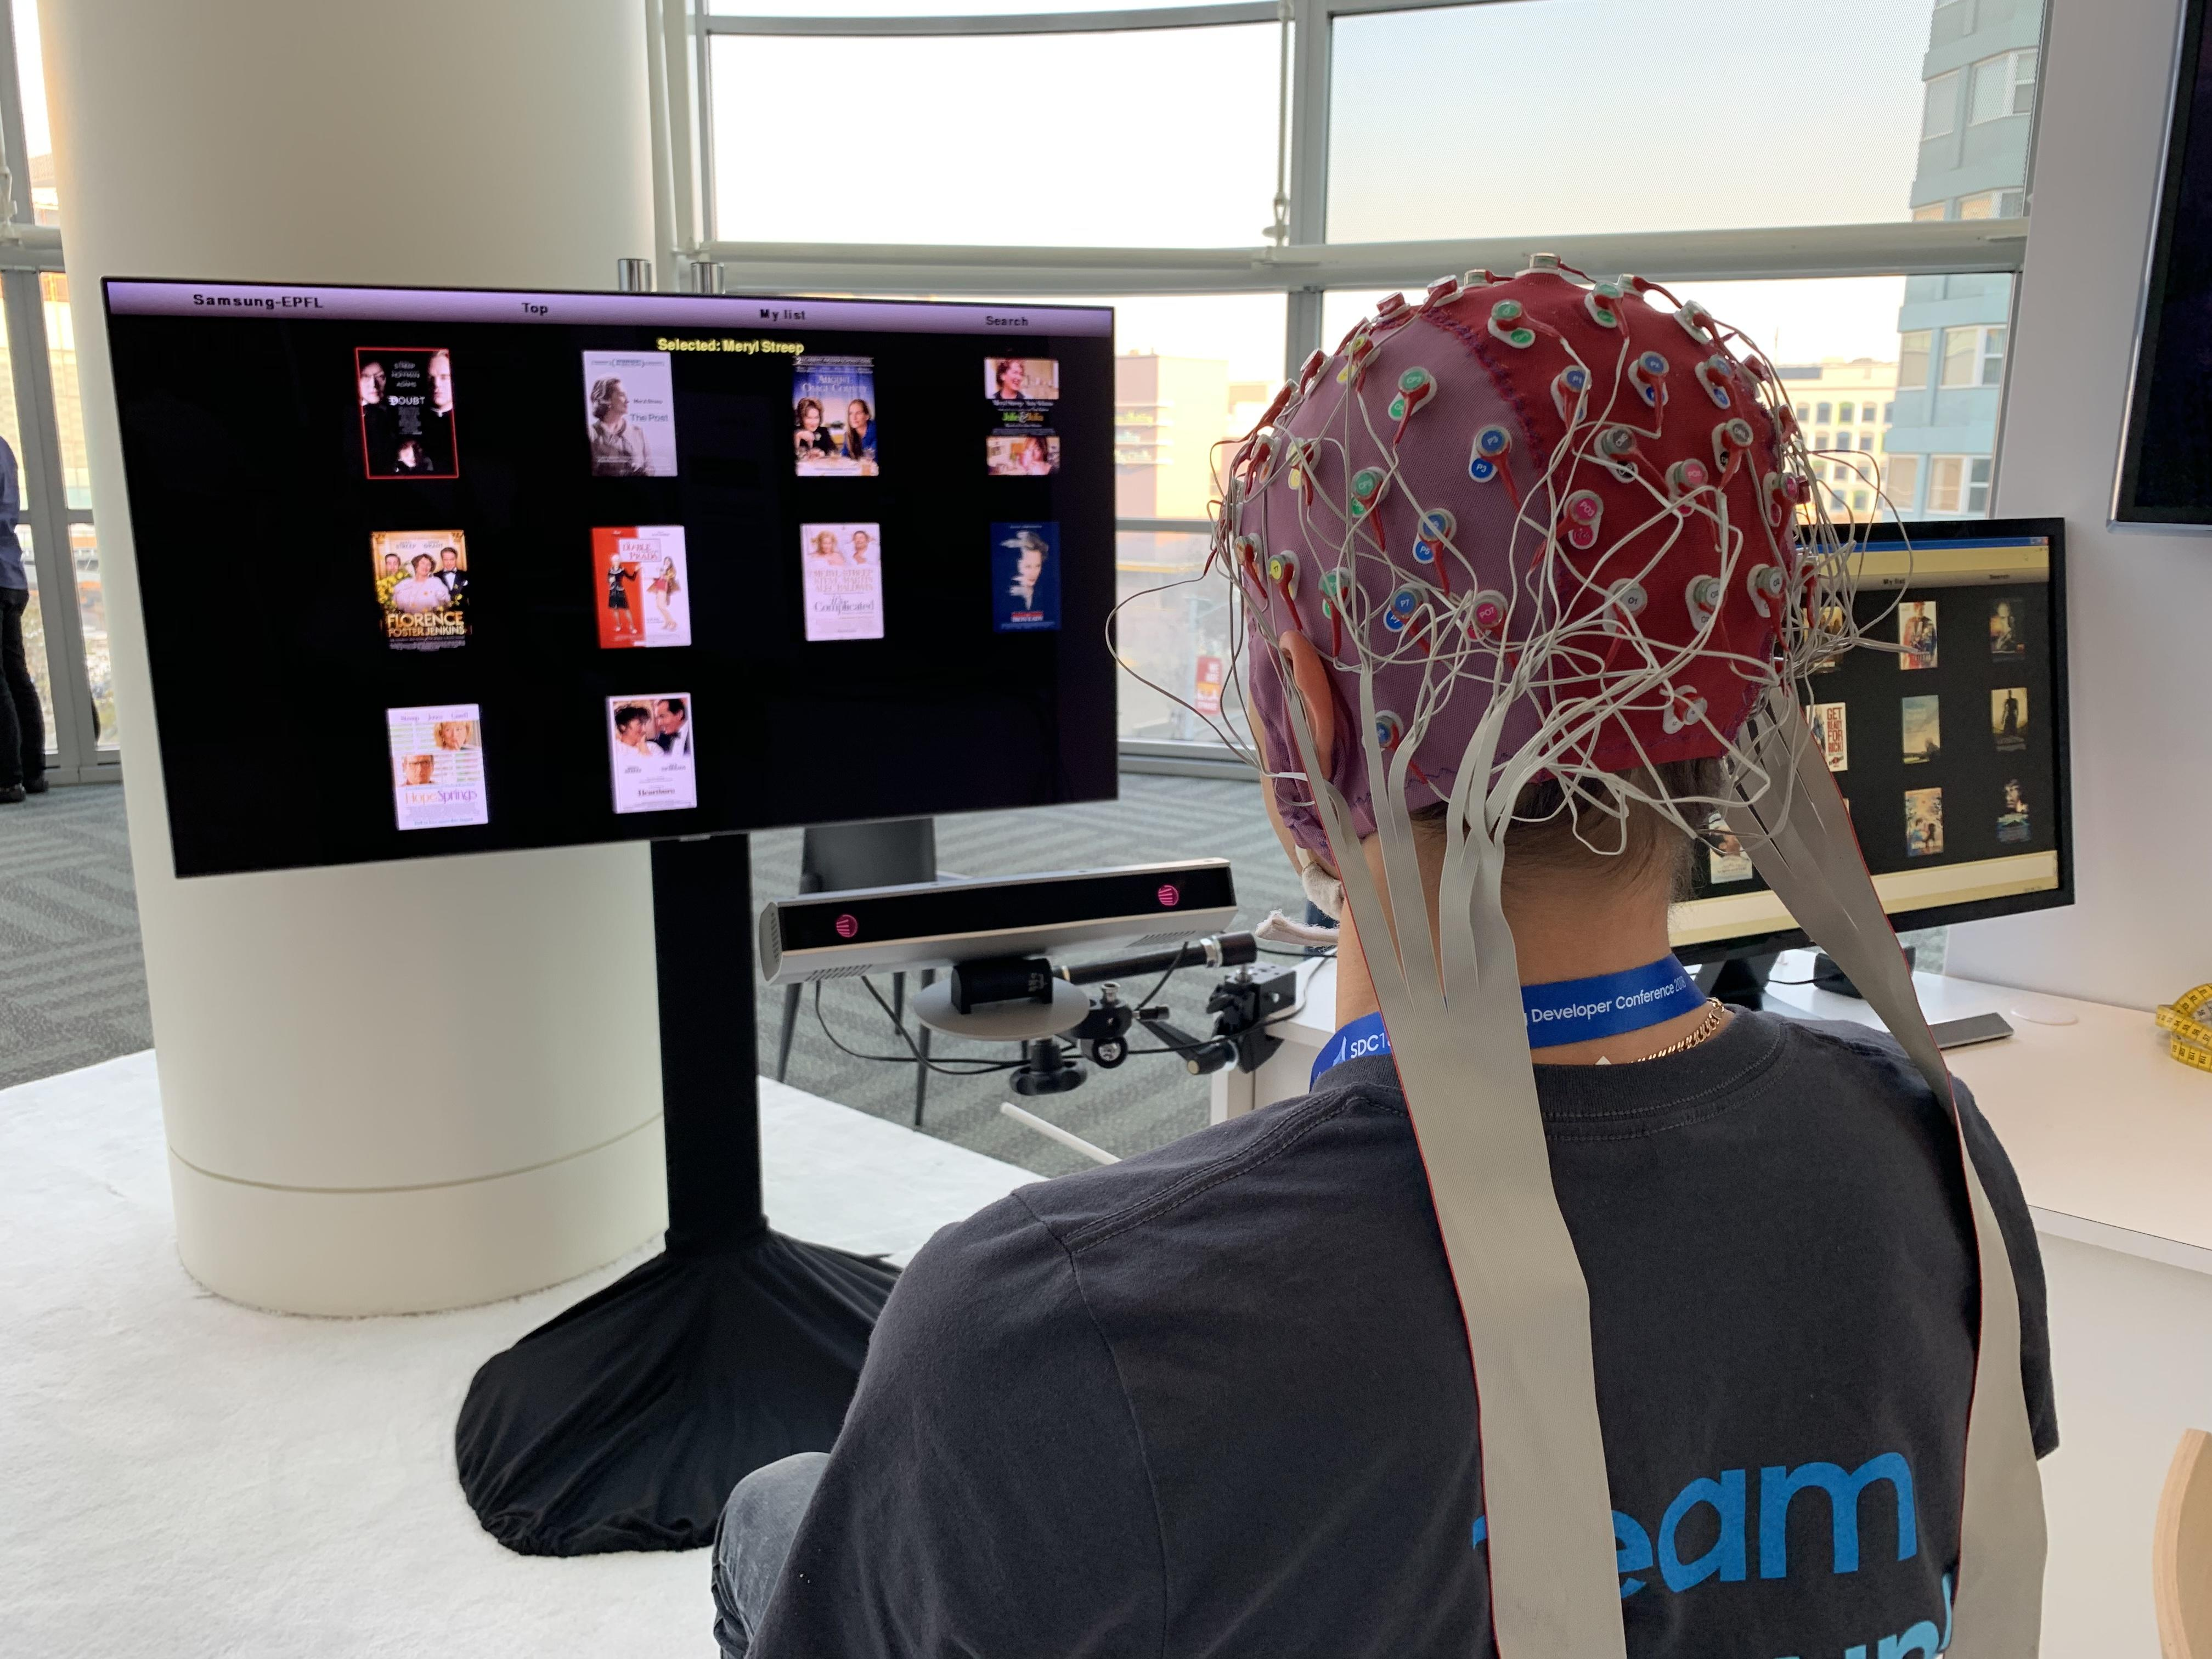 samsung-project-pontis-tv-controlled-by-brainwaves